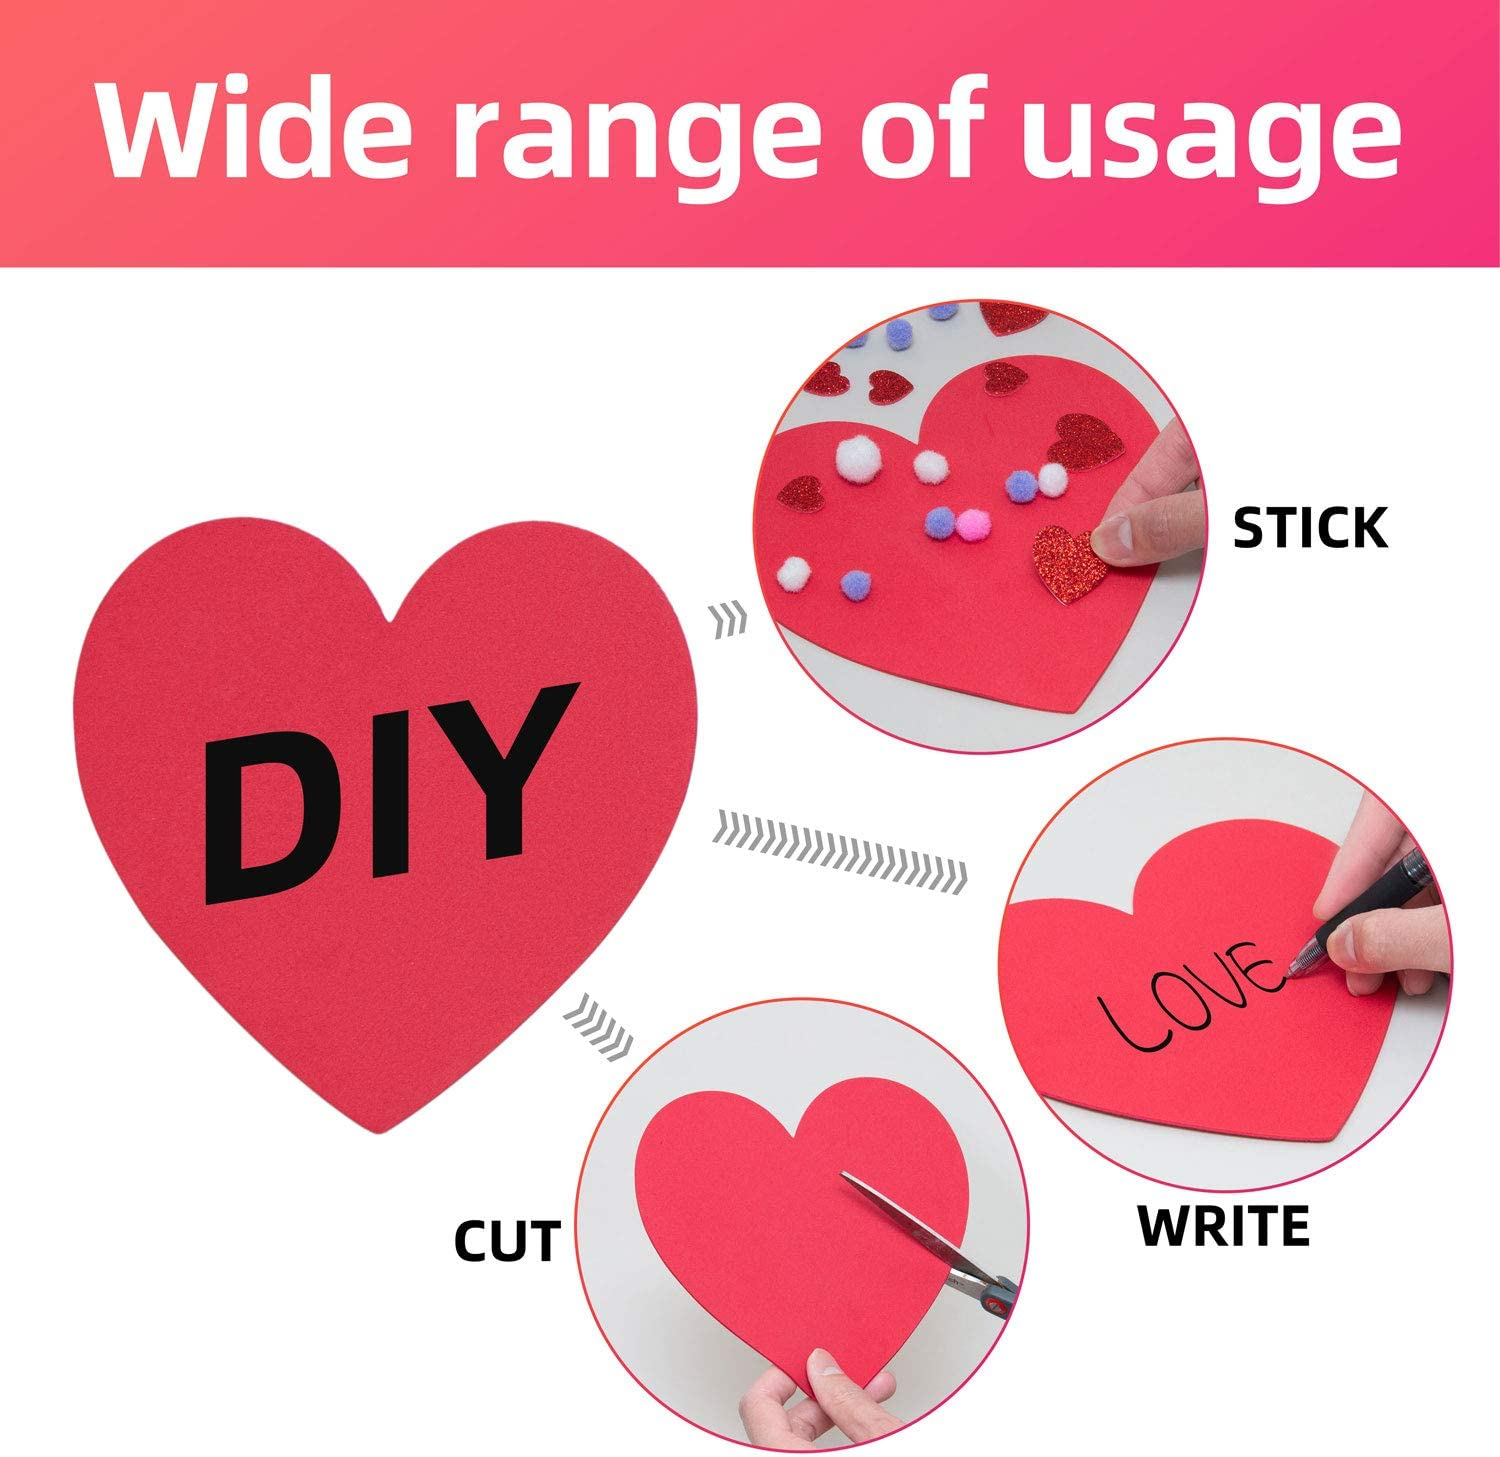 Aweyka 228 Pieces Valentines Foam Heart Craft Set Includes 20 Heart Shaped Foams 100 Glitter Self-Adhesive Heart Stickers 100 Pom-poms for Valentines Day Wedding Anniversary Birthday Party Supplies